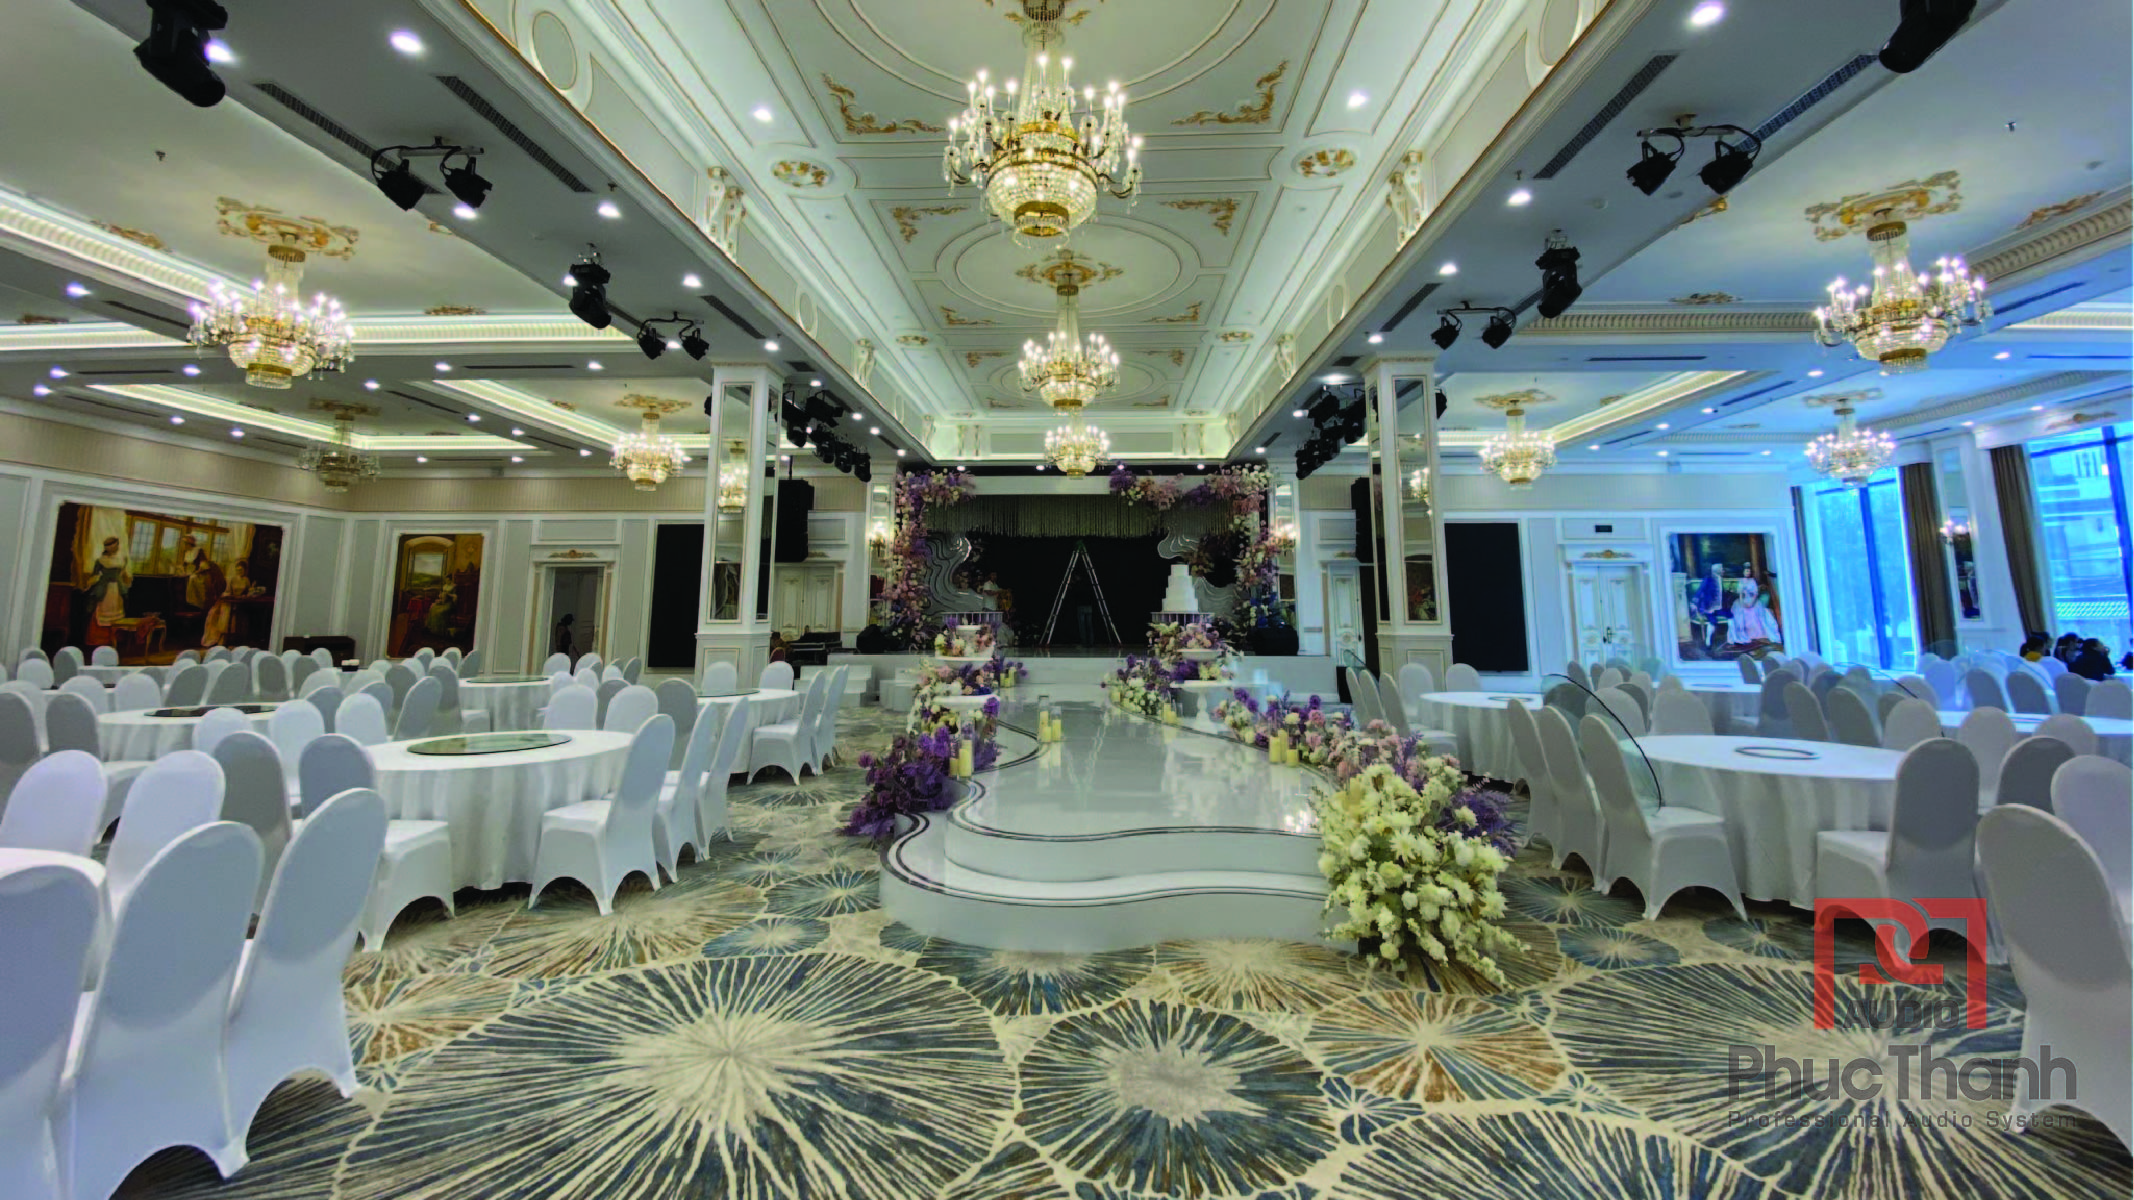 Summer Vinh - Summer Convention Center Nghệ An